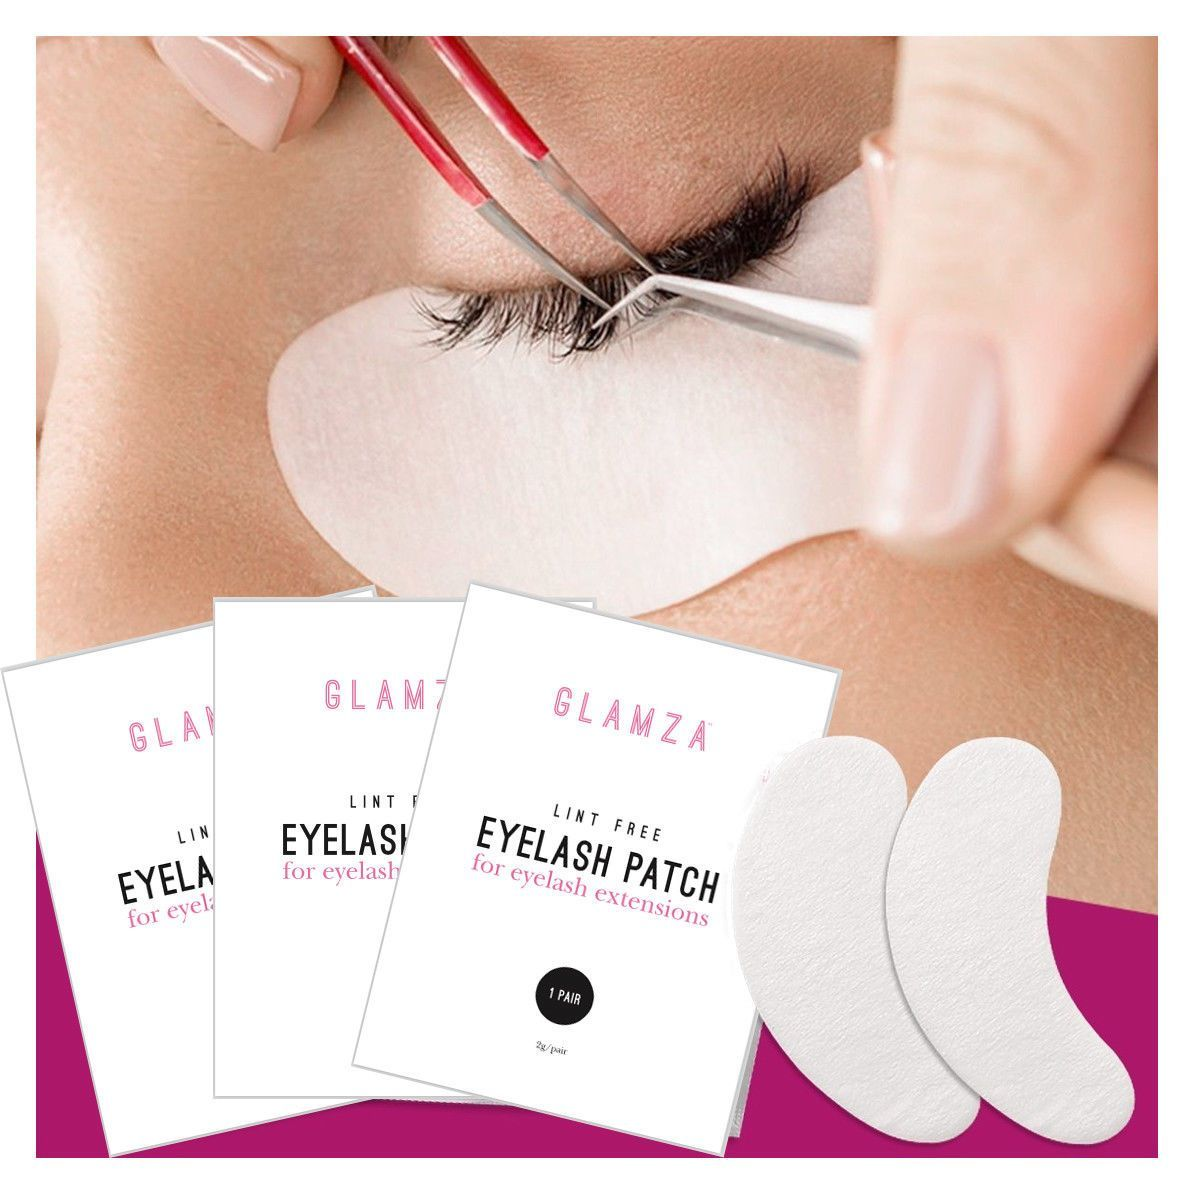 Glamza Eyelash Extension Patches, Makeup Tools by Beauty Pop Cosmetics